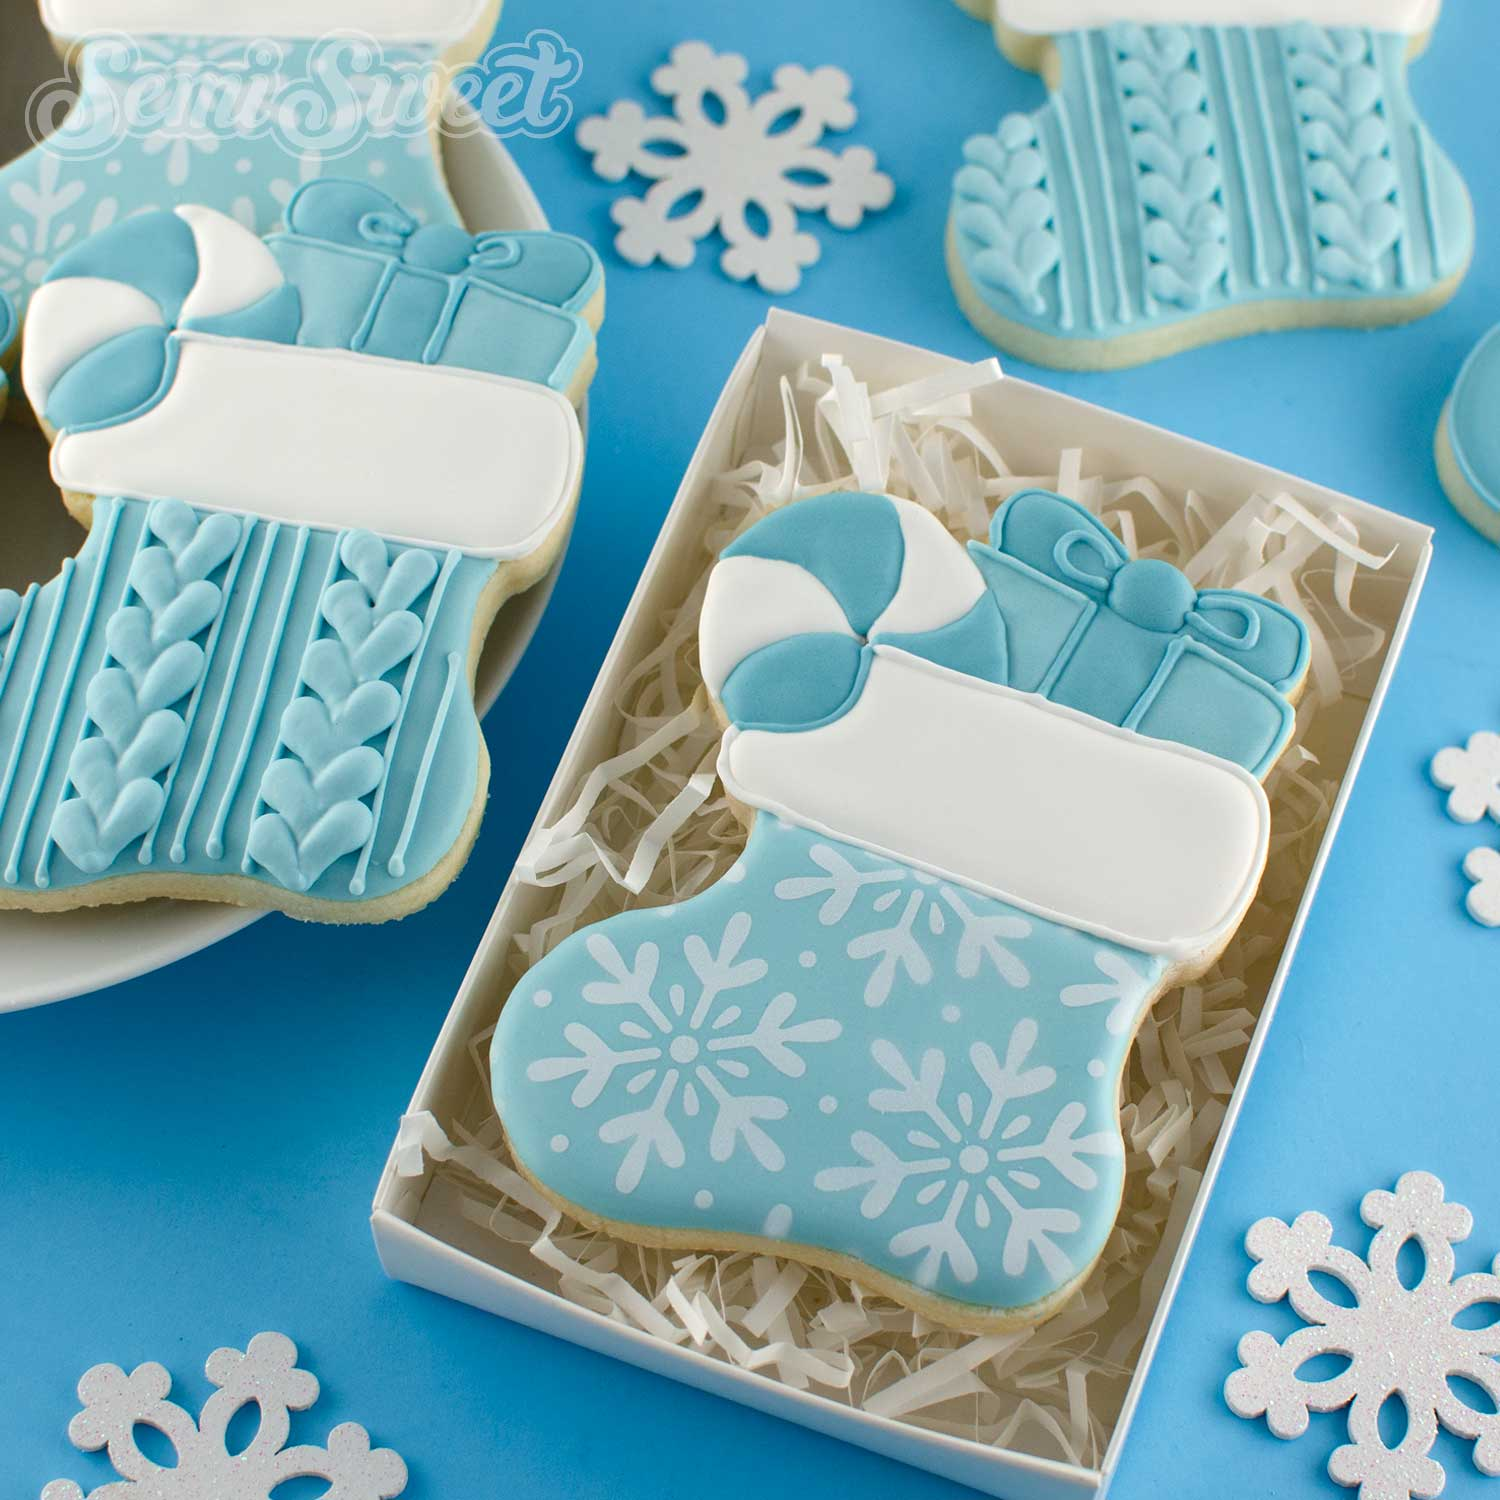 How to Make Christmas Stocking Cookies